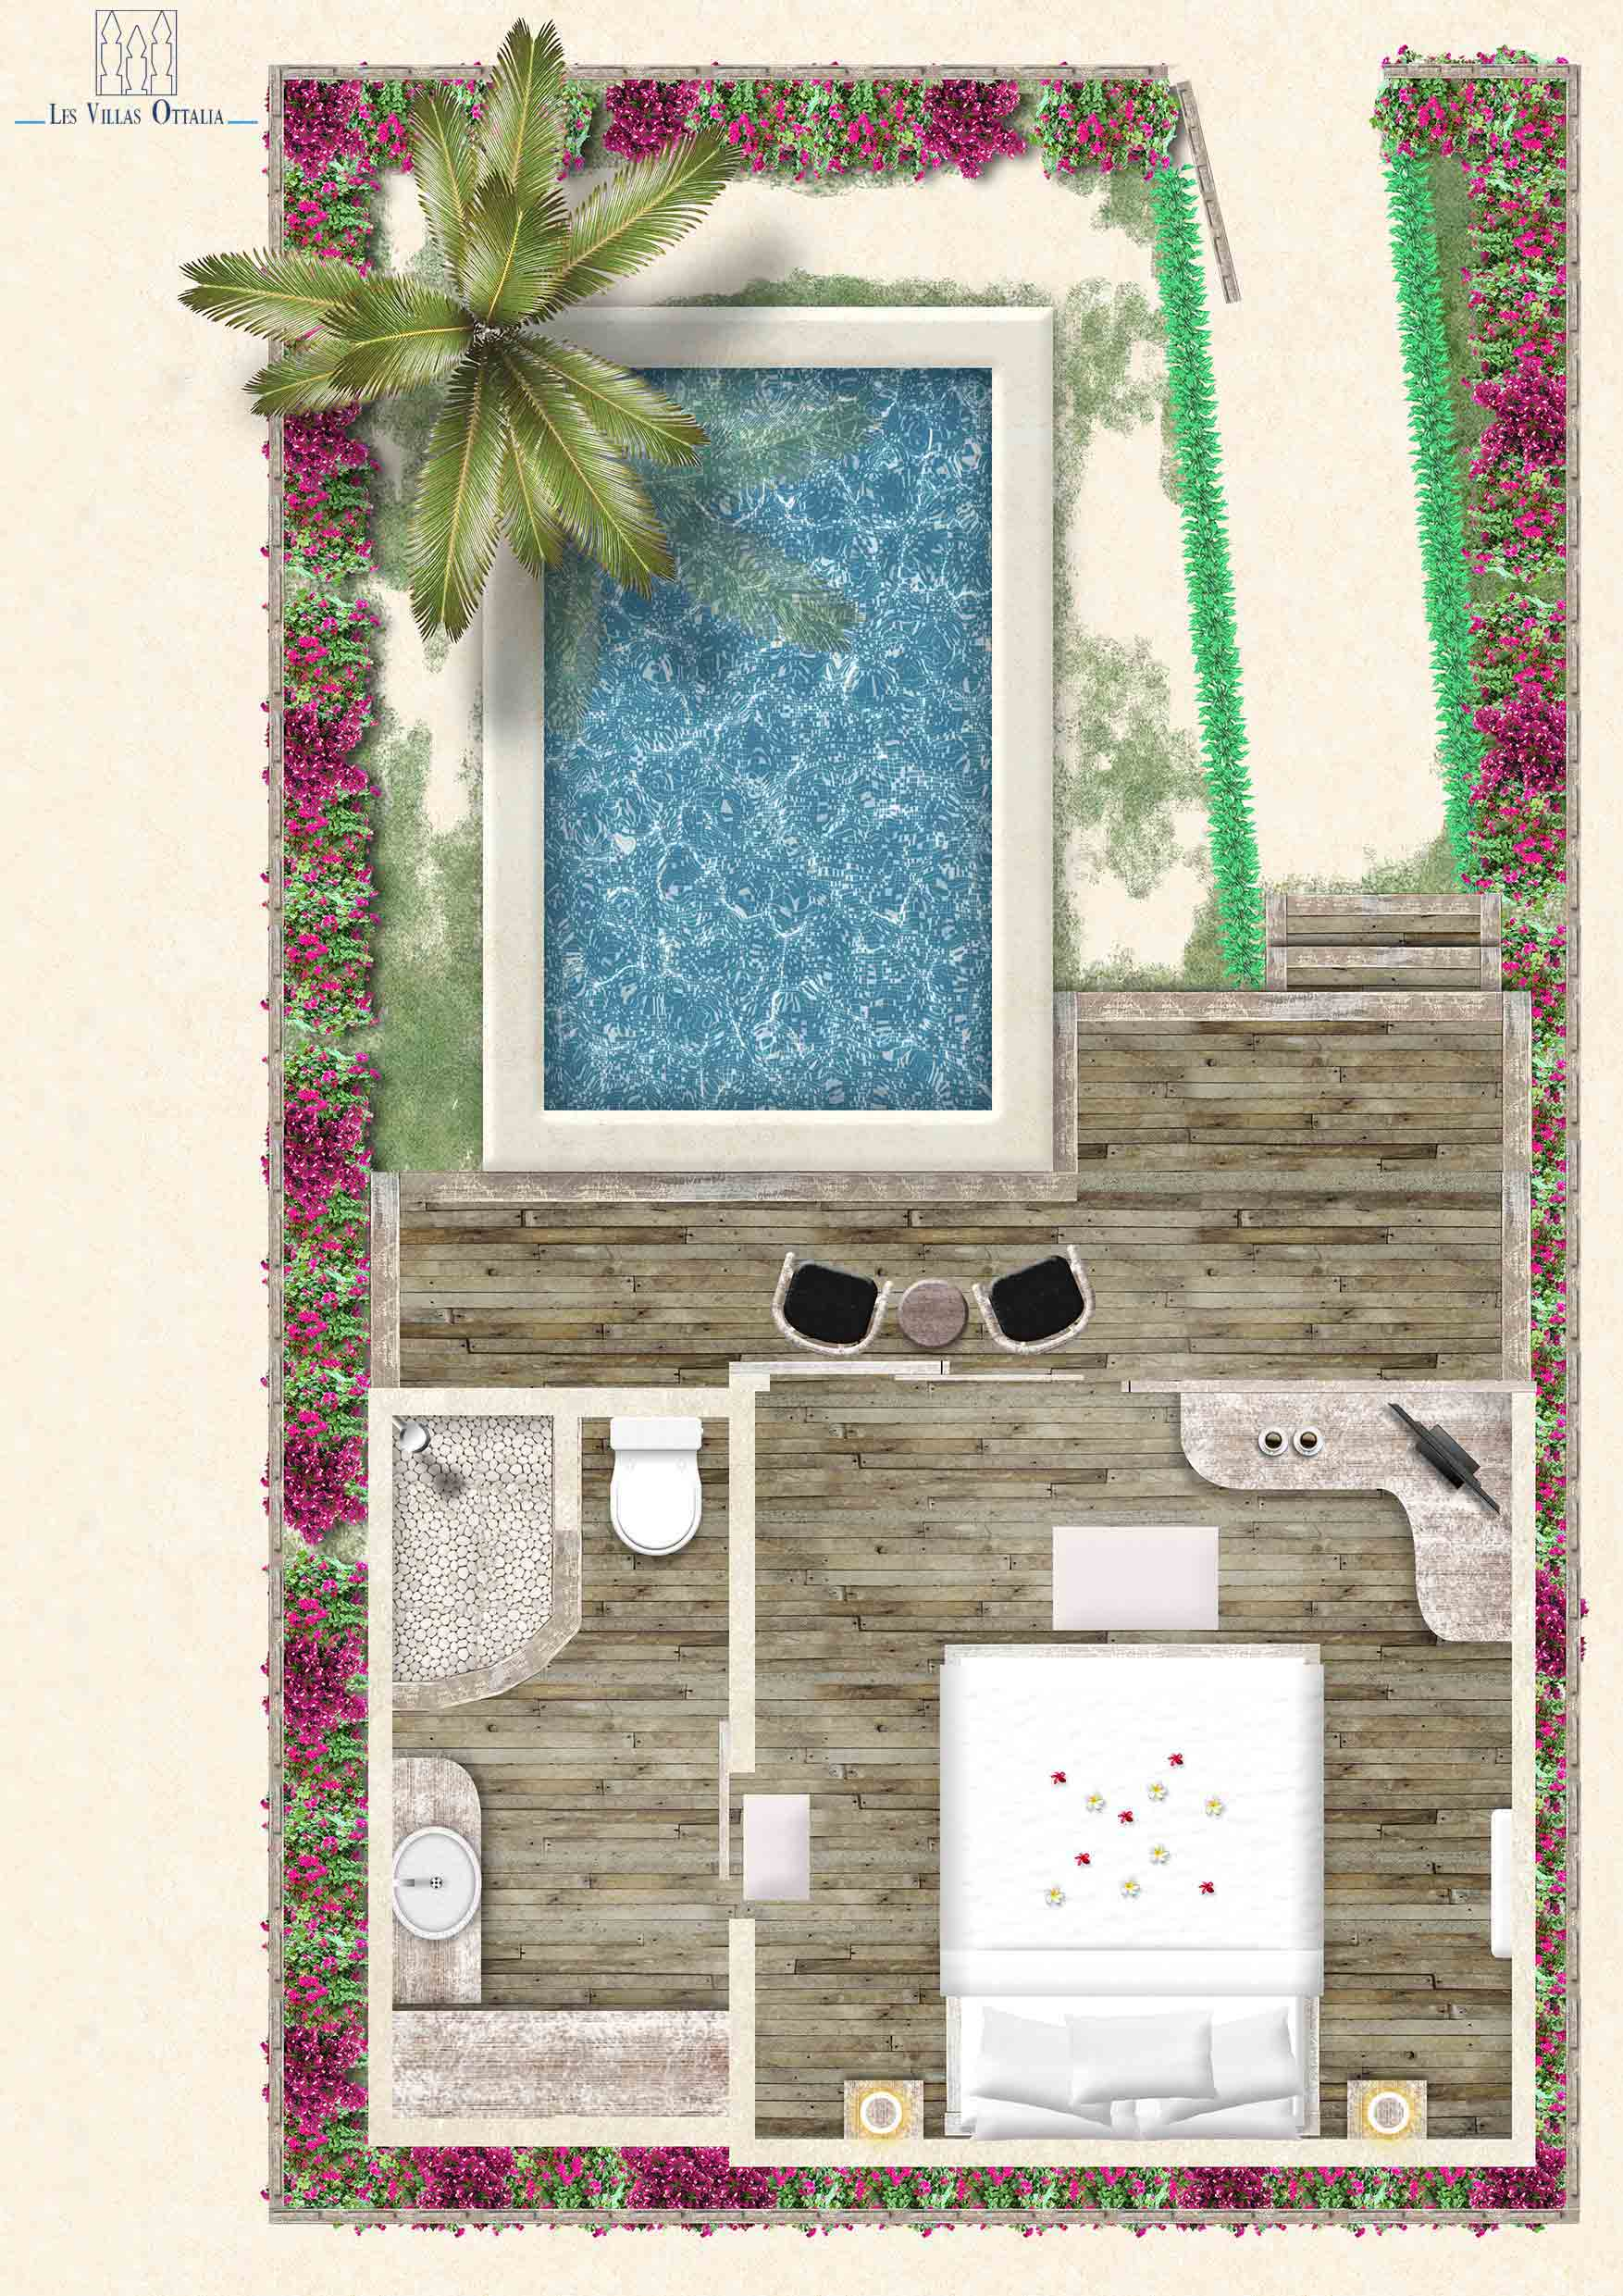 villa_superior_private_pool_les_villas_ottalia.jpg